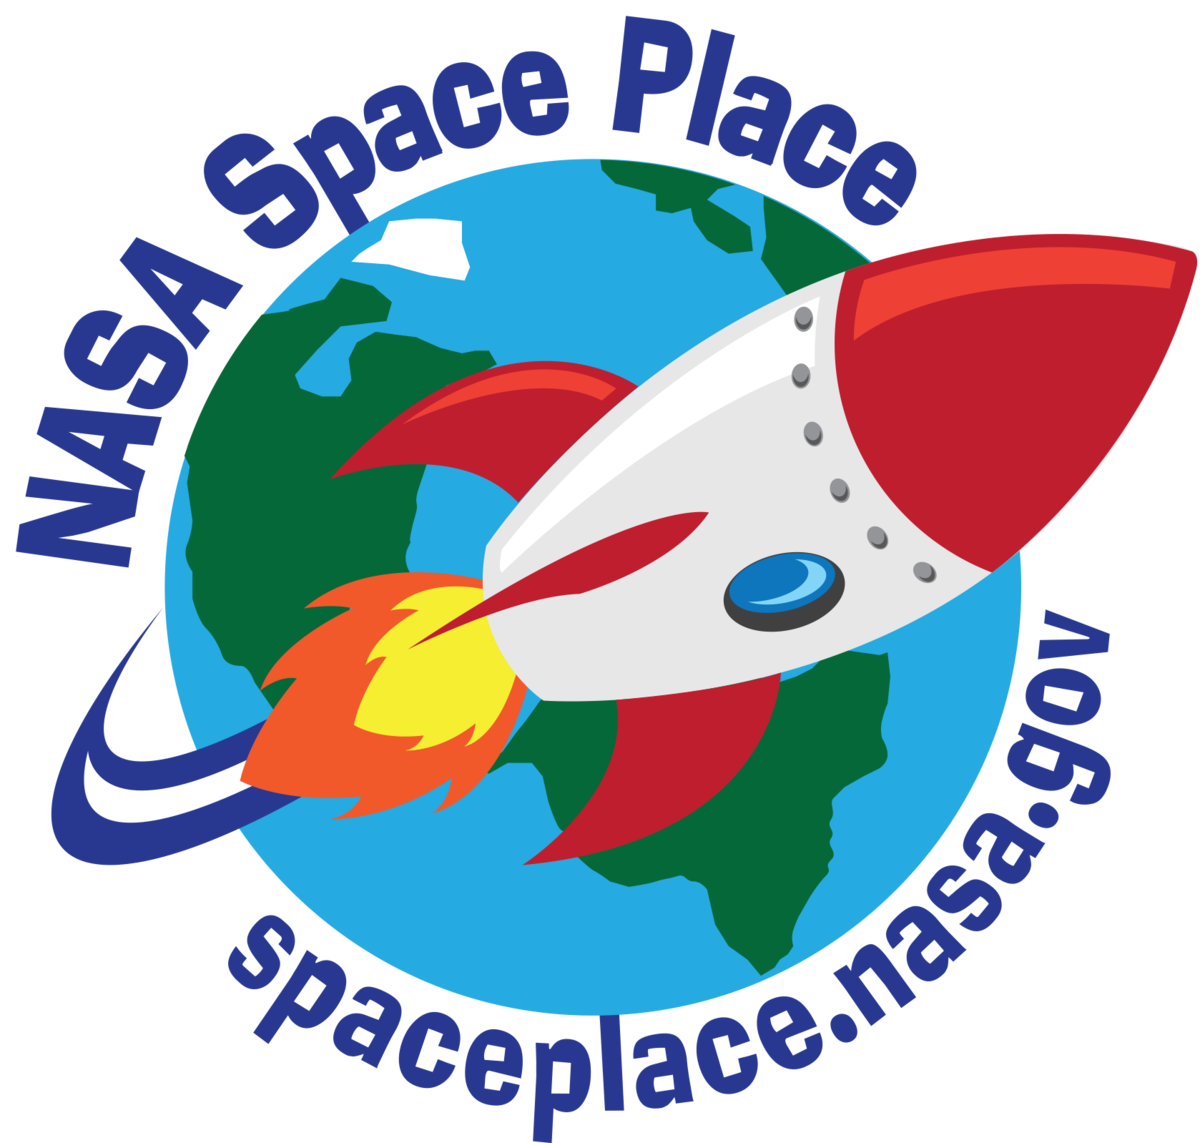 Galaxy clipart space mission. Nasa s place wikipedia